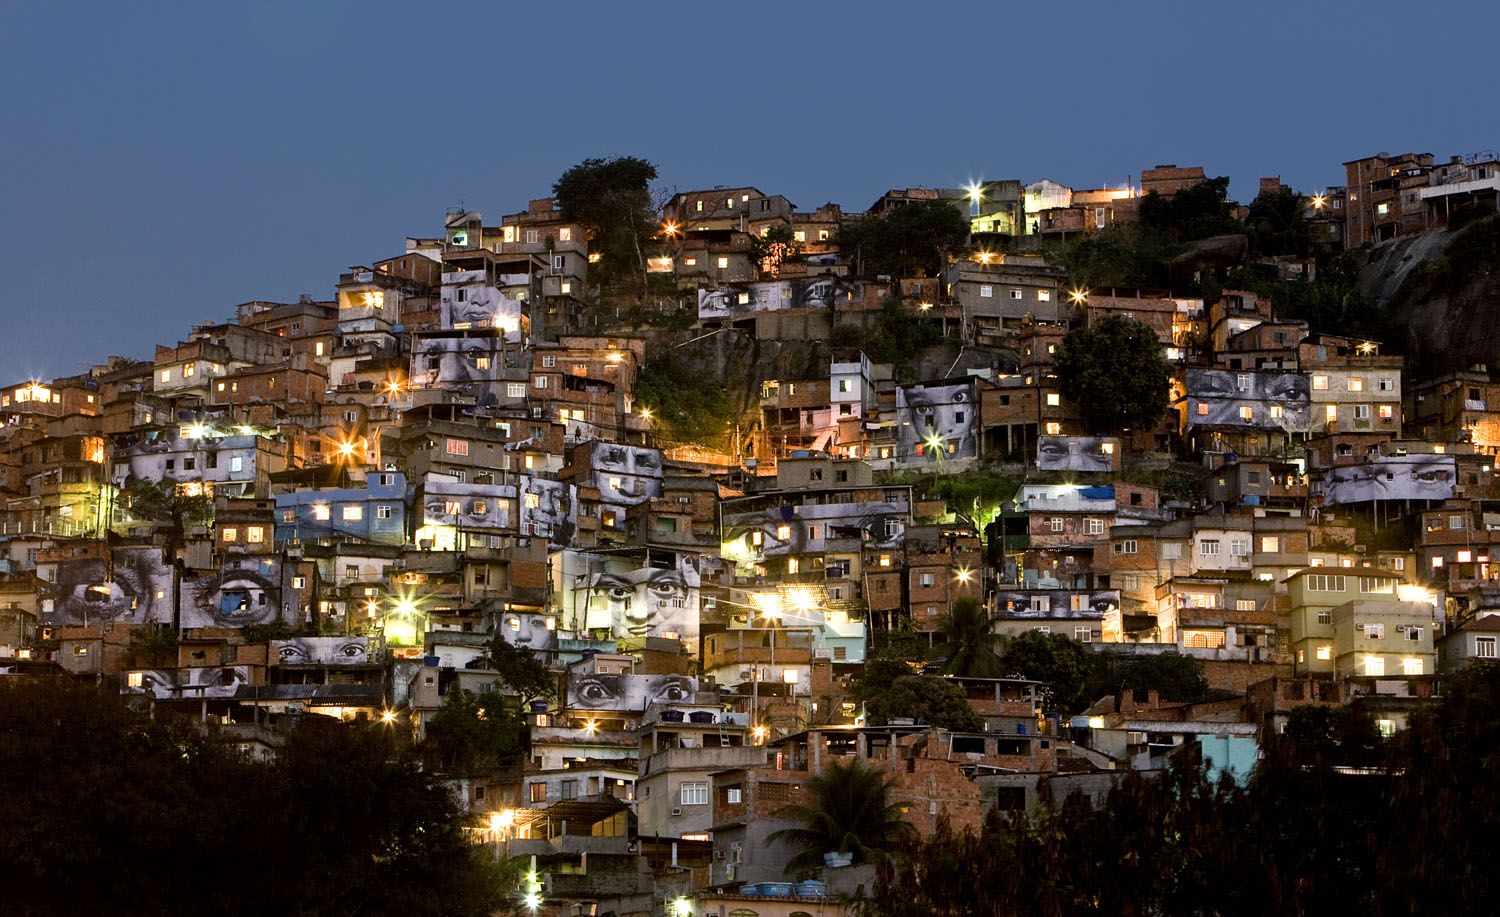 General view at night: Favela Morro Da Providencia; Rio de Janeiro, Brazil, from the series, Women Are Heroes, August, 2008.